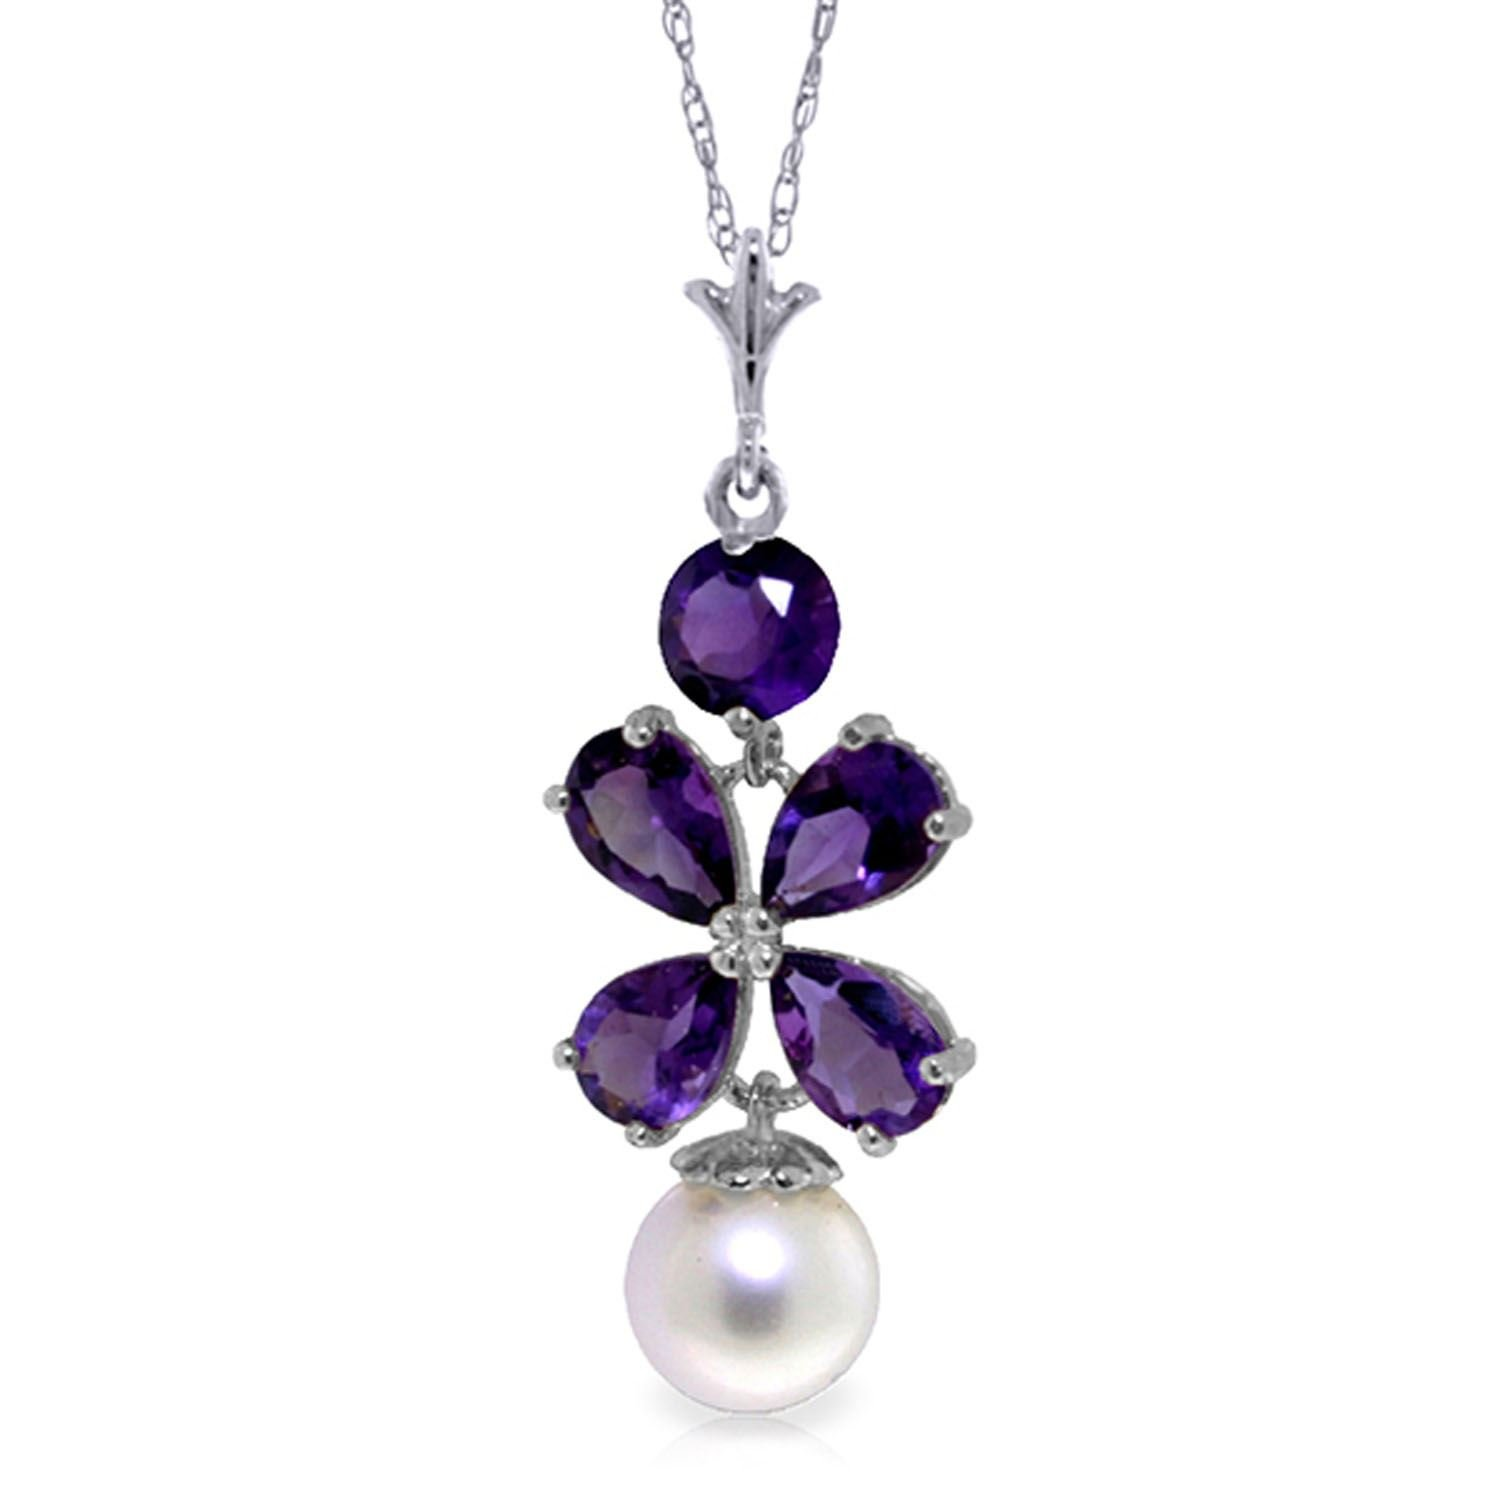 ALARRI 3.65 Carat 14K Solid White Gold Fleurs Rustique Amethyst Pearl Necklace with 20 Inch Chain Length